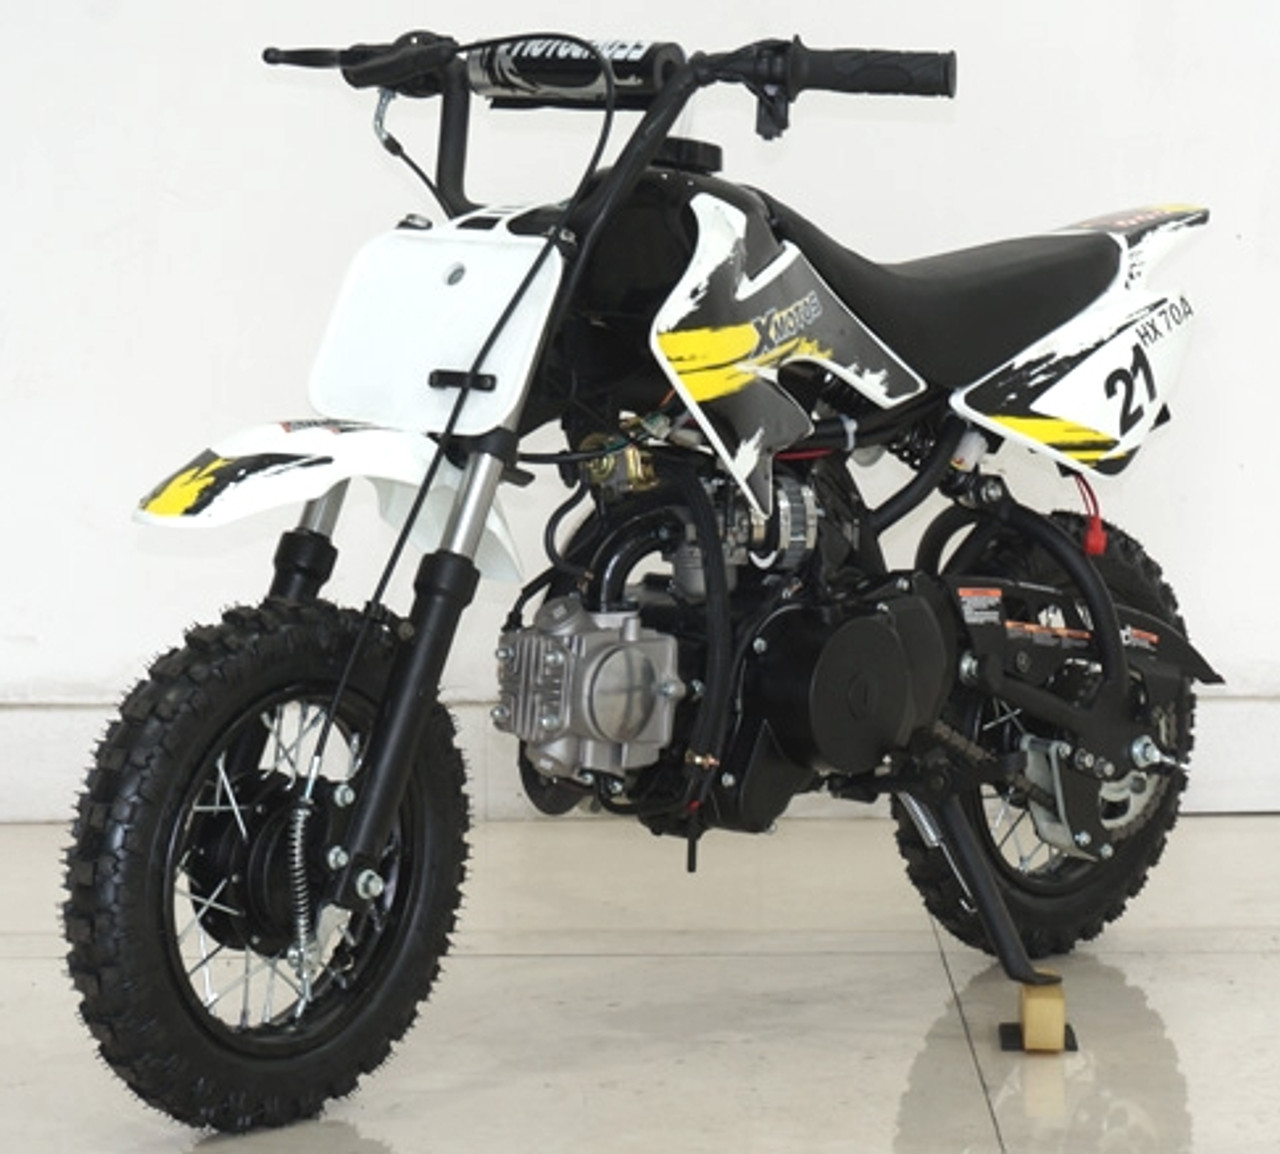 Ricky Power Sports XMOTO  DIRT bike 70cc